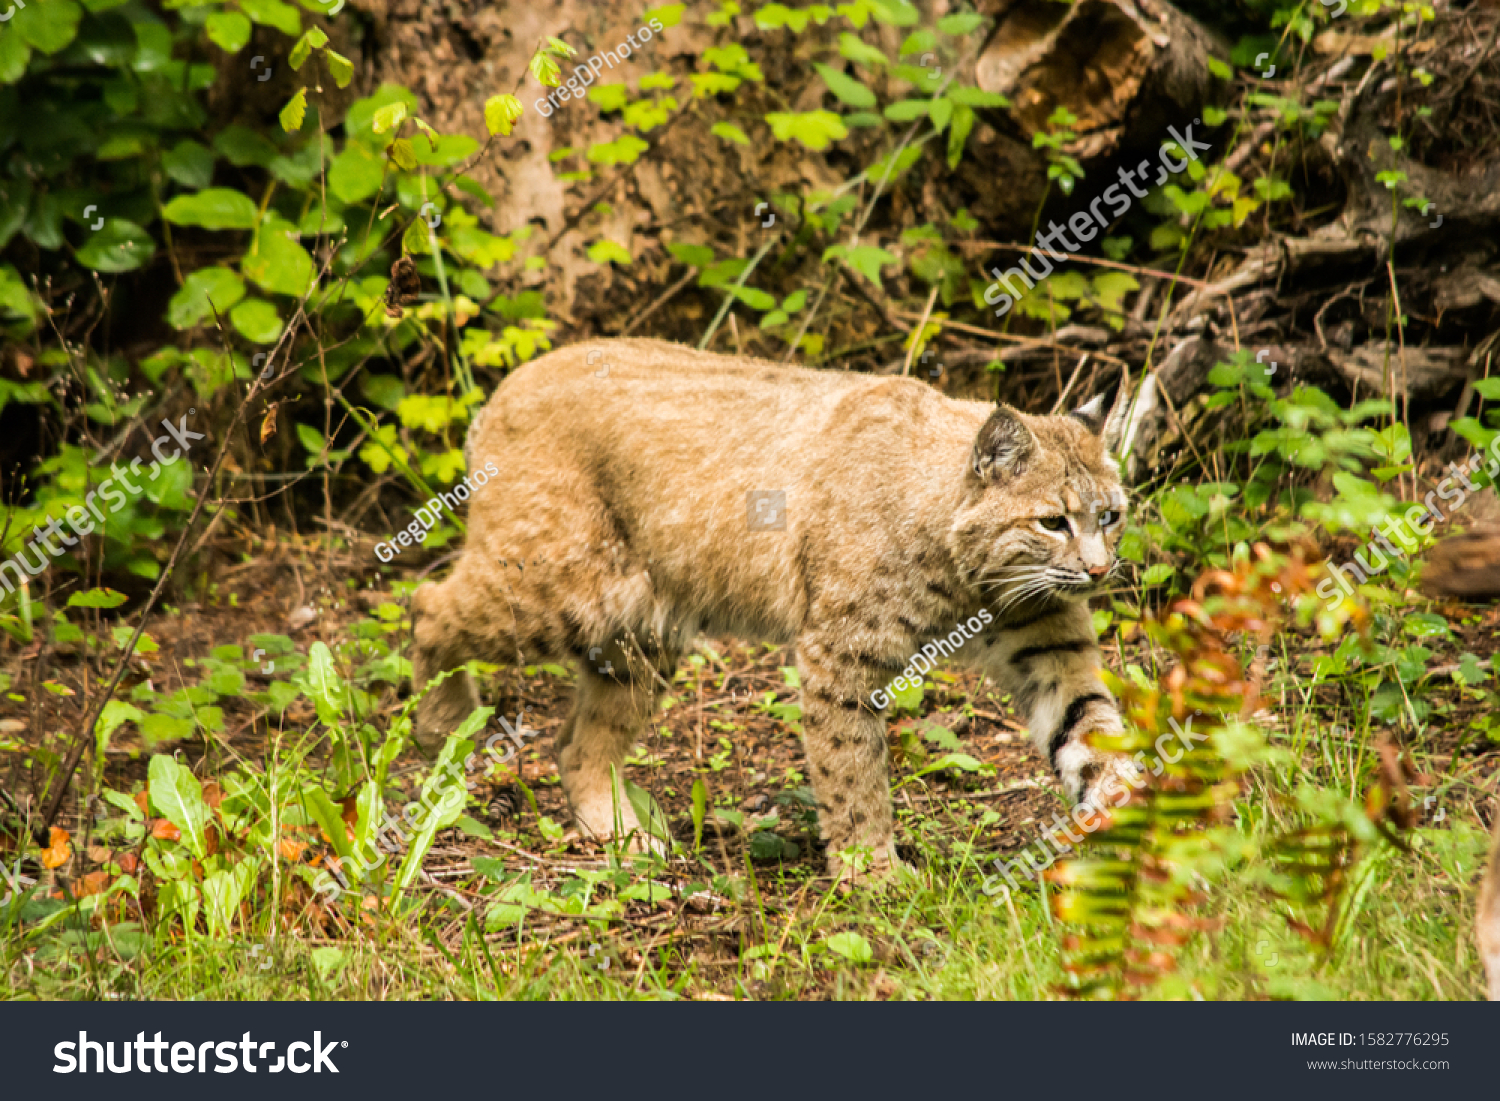 bobcat Lynx rufus prowling around for lunch